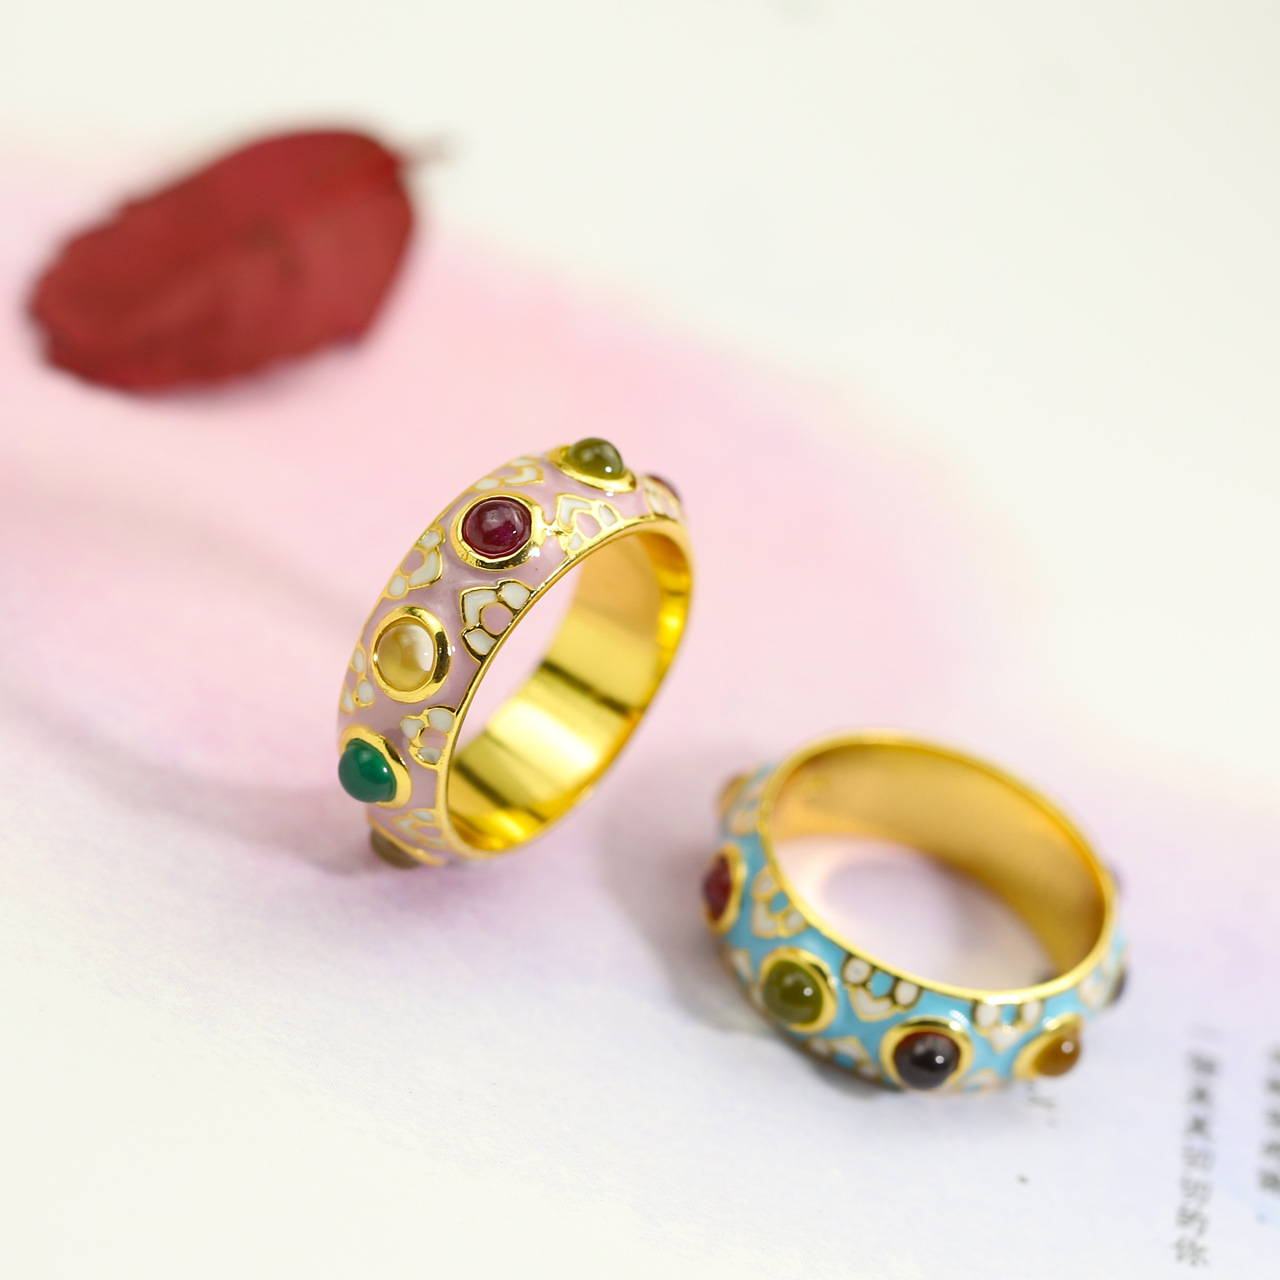 S925 sterling silver jewelry hand wholesale wholesale Thailand enamel color craft colorful gem ring national wind wholesale